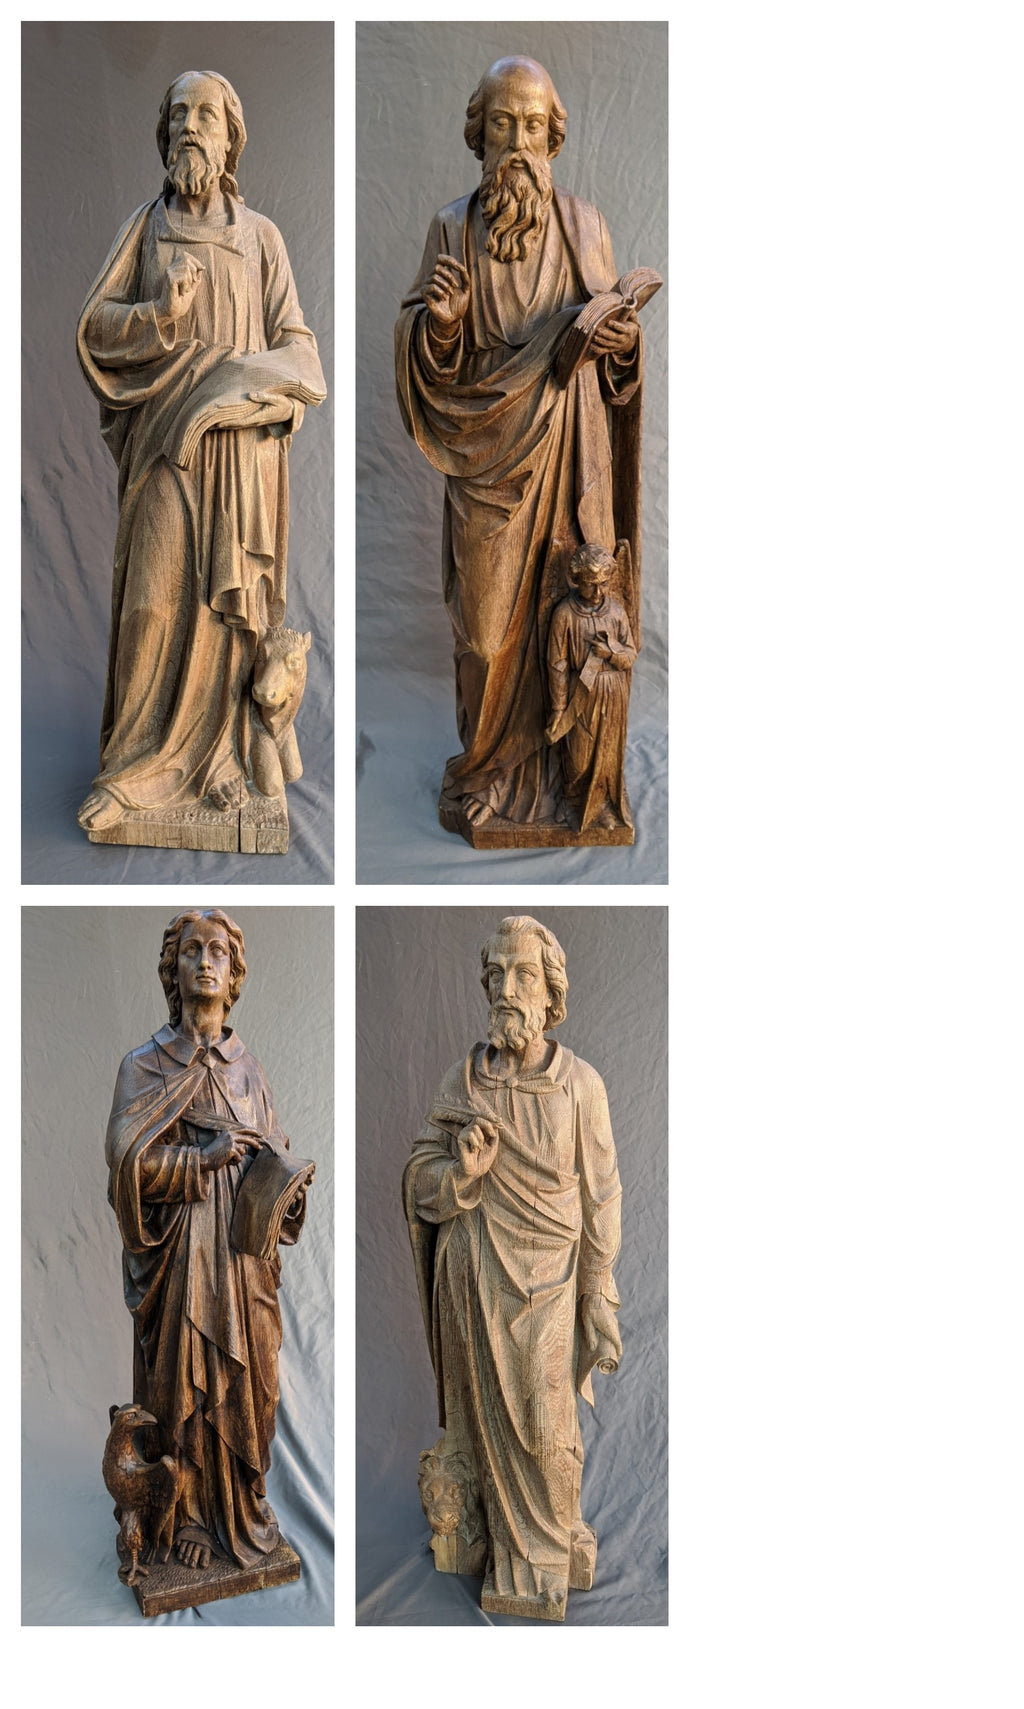 SET OF CARVED OAK STATUES OF THE 4 EVANGELISTS: MATTHEW, MARK, LUKE, AND JOHN